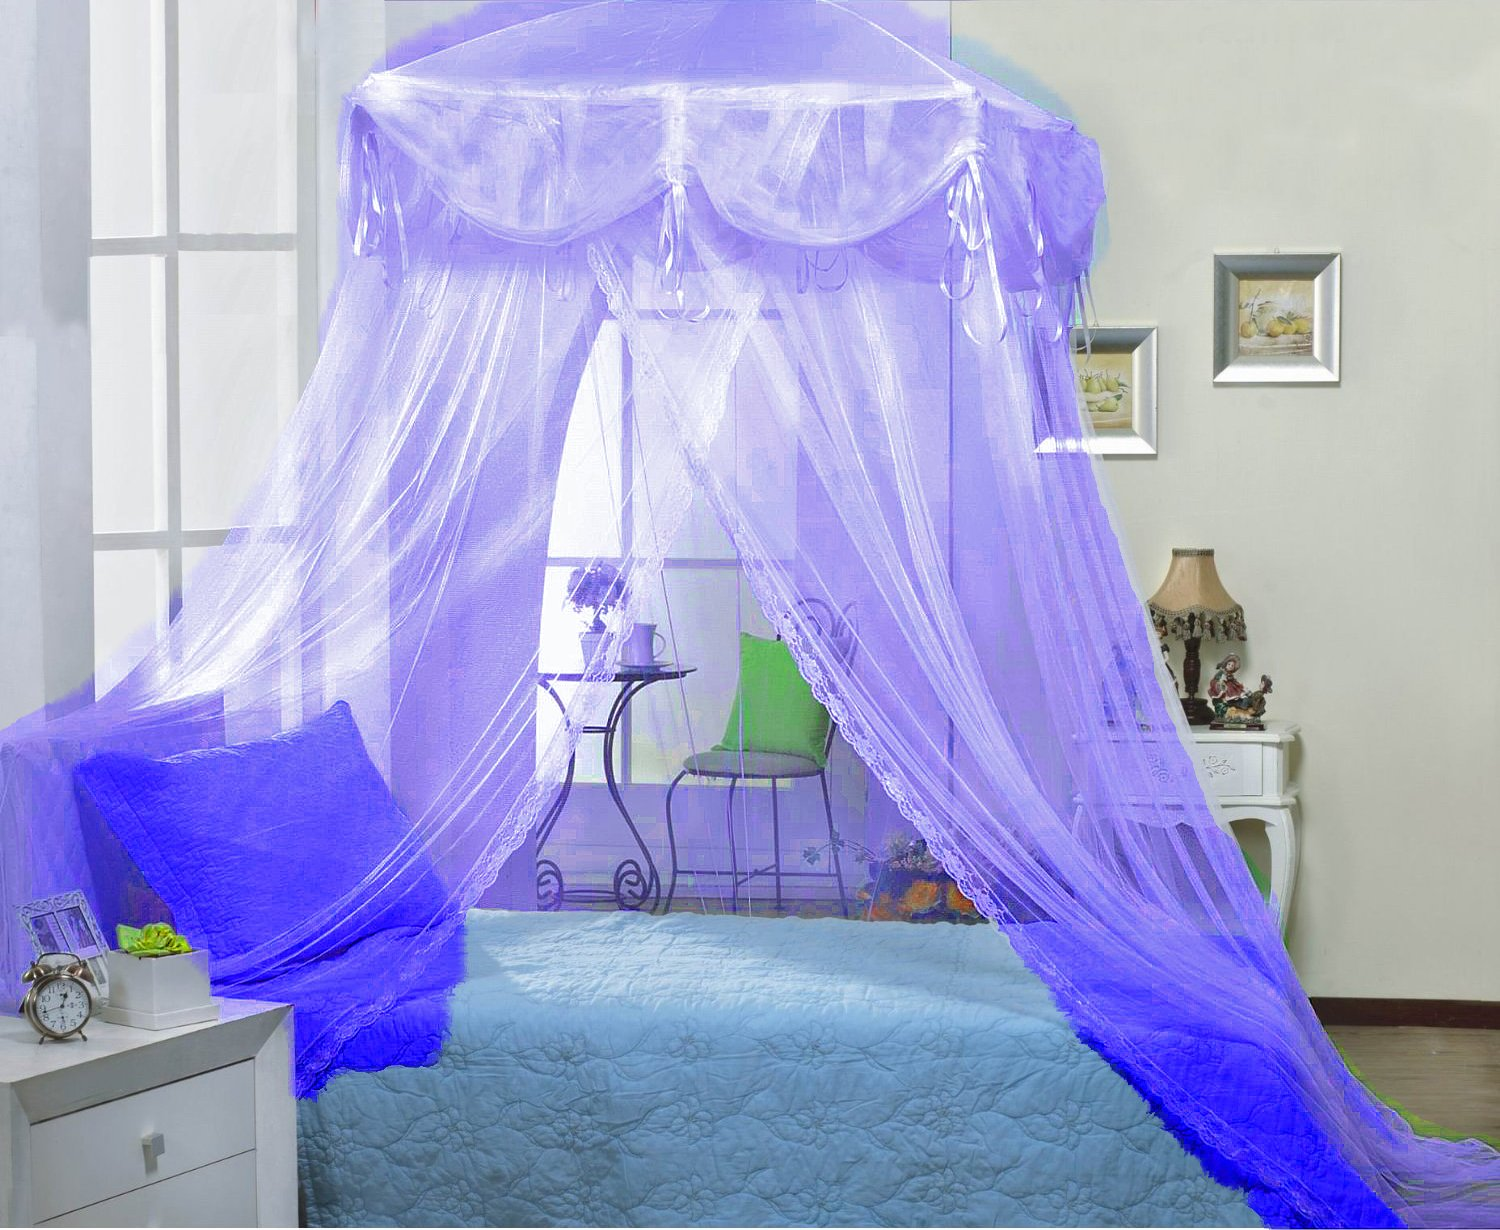 Amazon.com Purple Lilac Four Corner Square Princess Bed Canopy By Sid Home u0026 Kitchen & Amazon.com: Purple Lilac Four Corner Square Princess Bed Canopy By ...